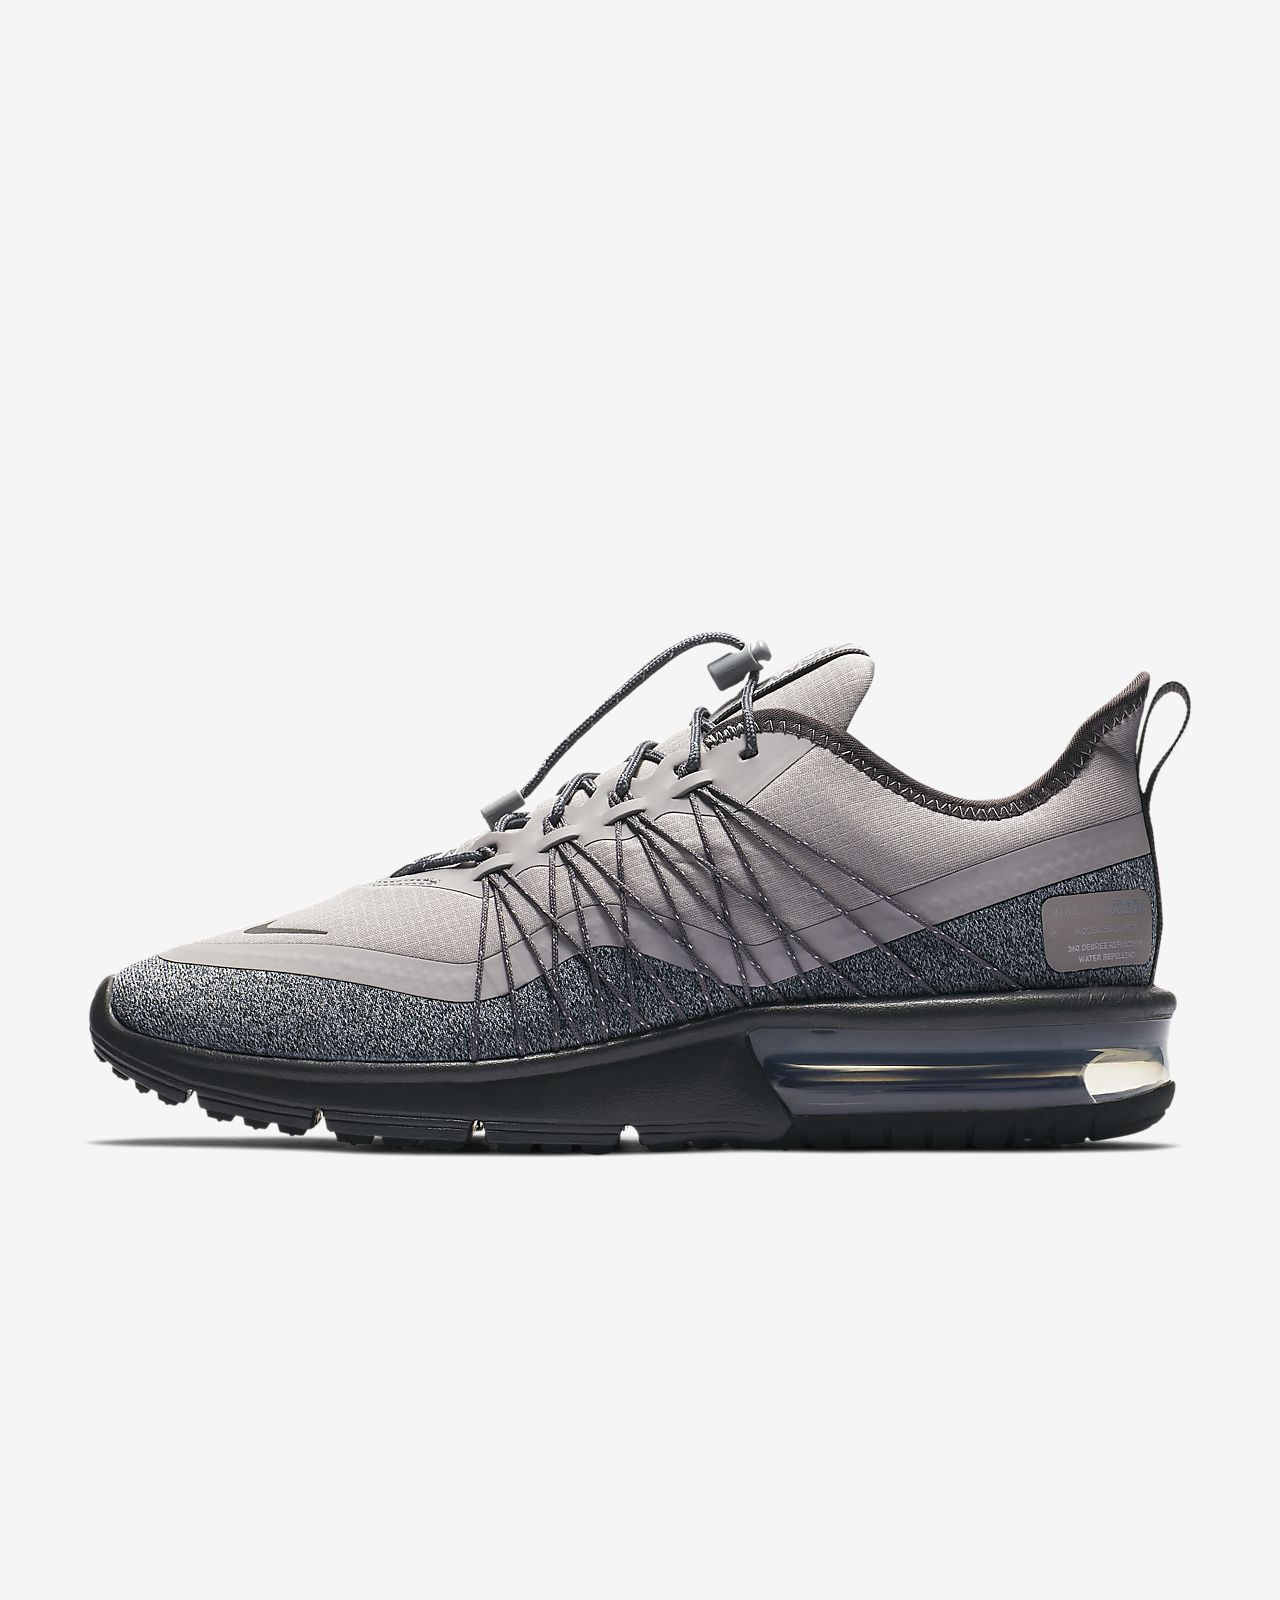 52a9c108a85516 Nike Air Max Sequent 4 Utility Women s Shoe . Nike.com